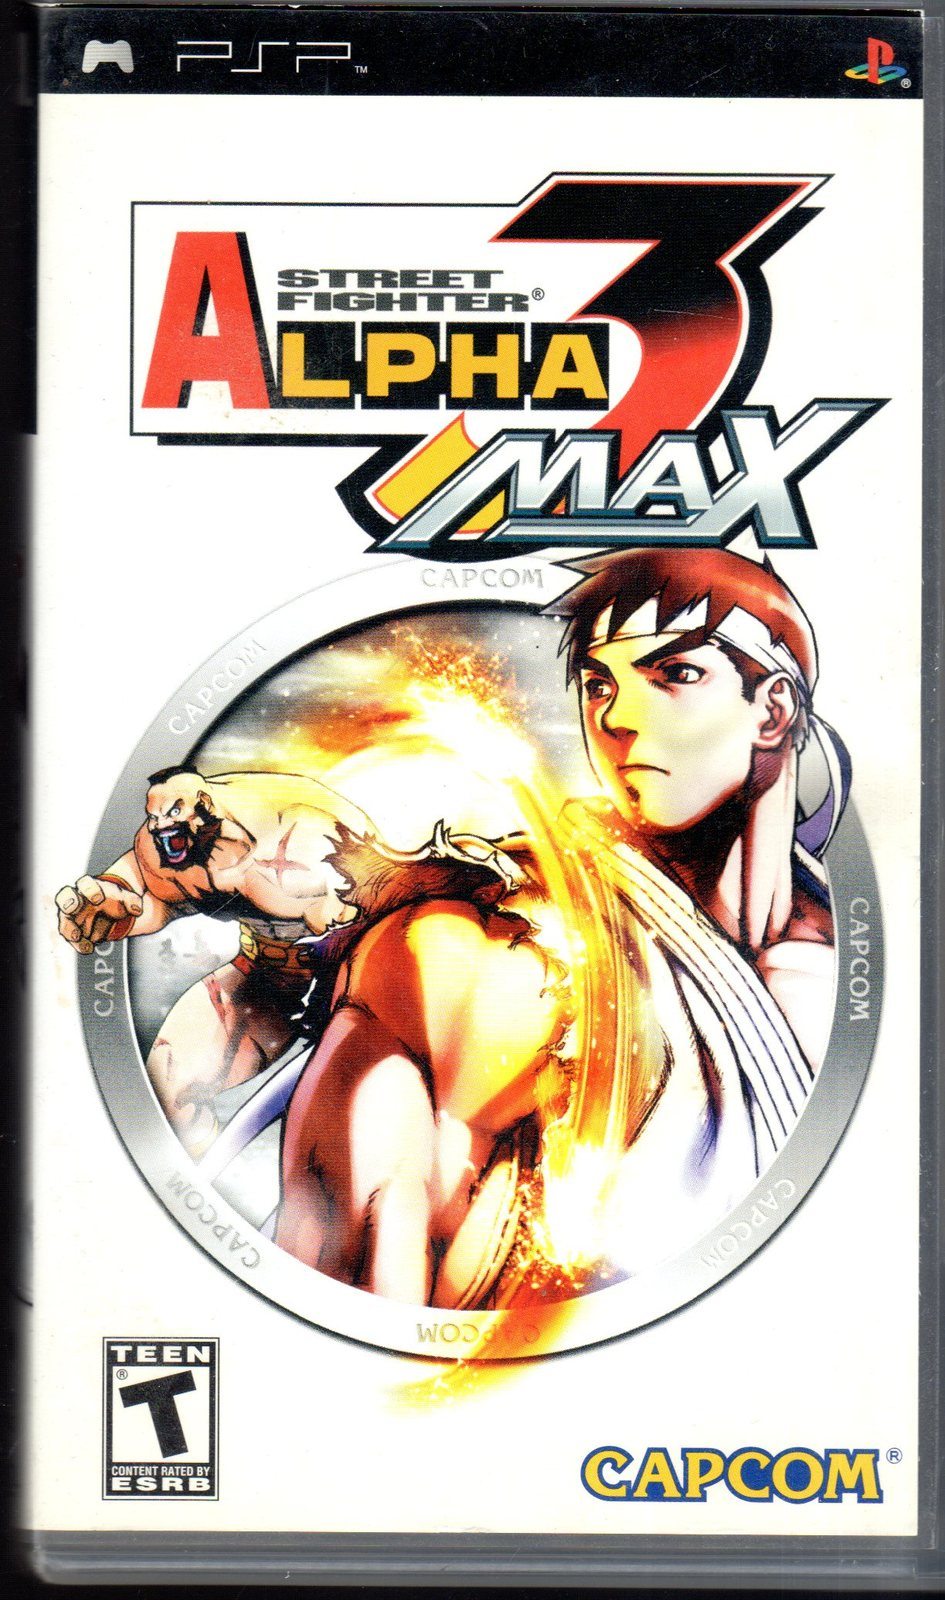 Primary image for Street Fighter Alpha 3 Max SONY PLAYSTATION Portable (PSP)